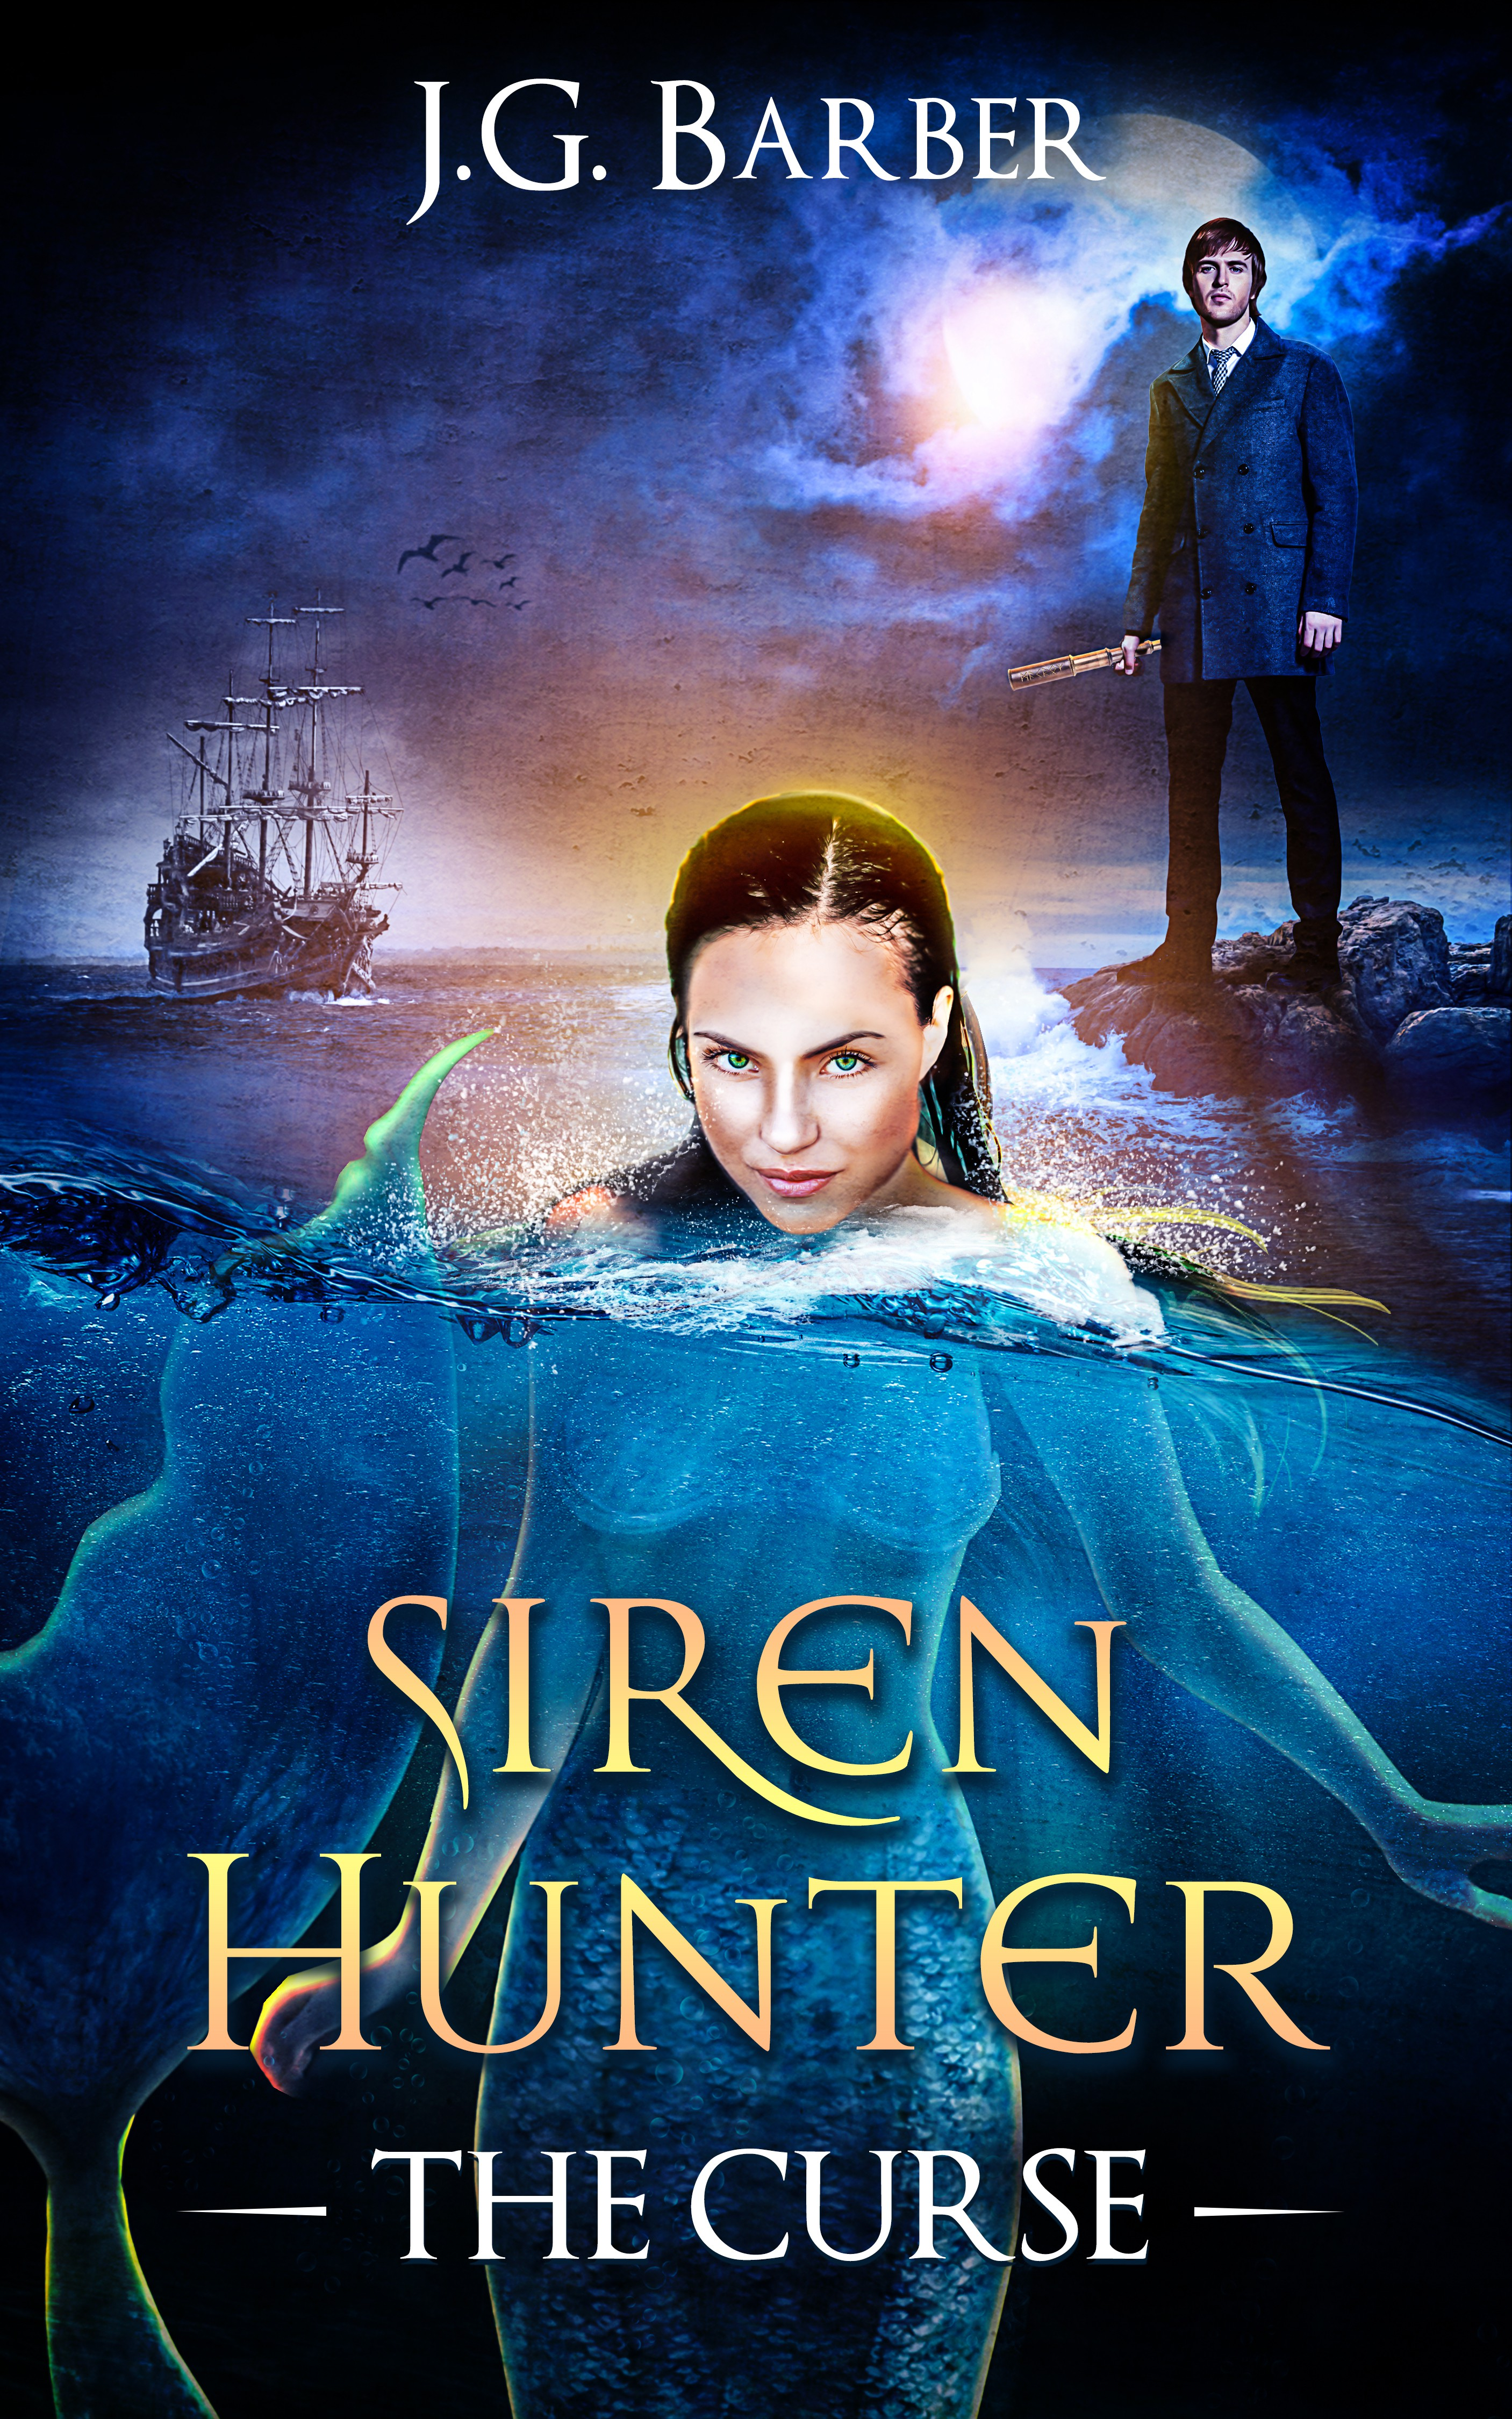 Siren Hunter needs an irresistibly seductive e-book cover